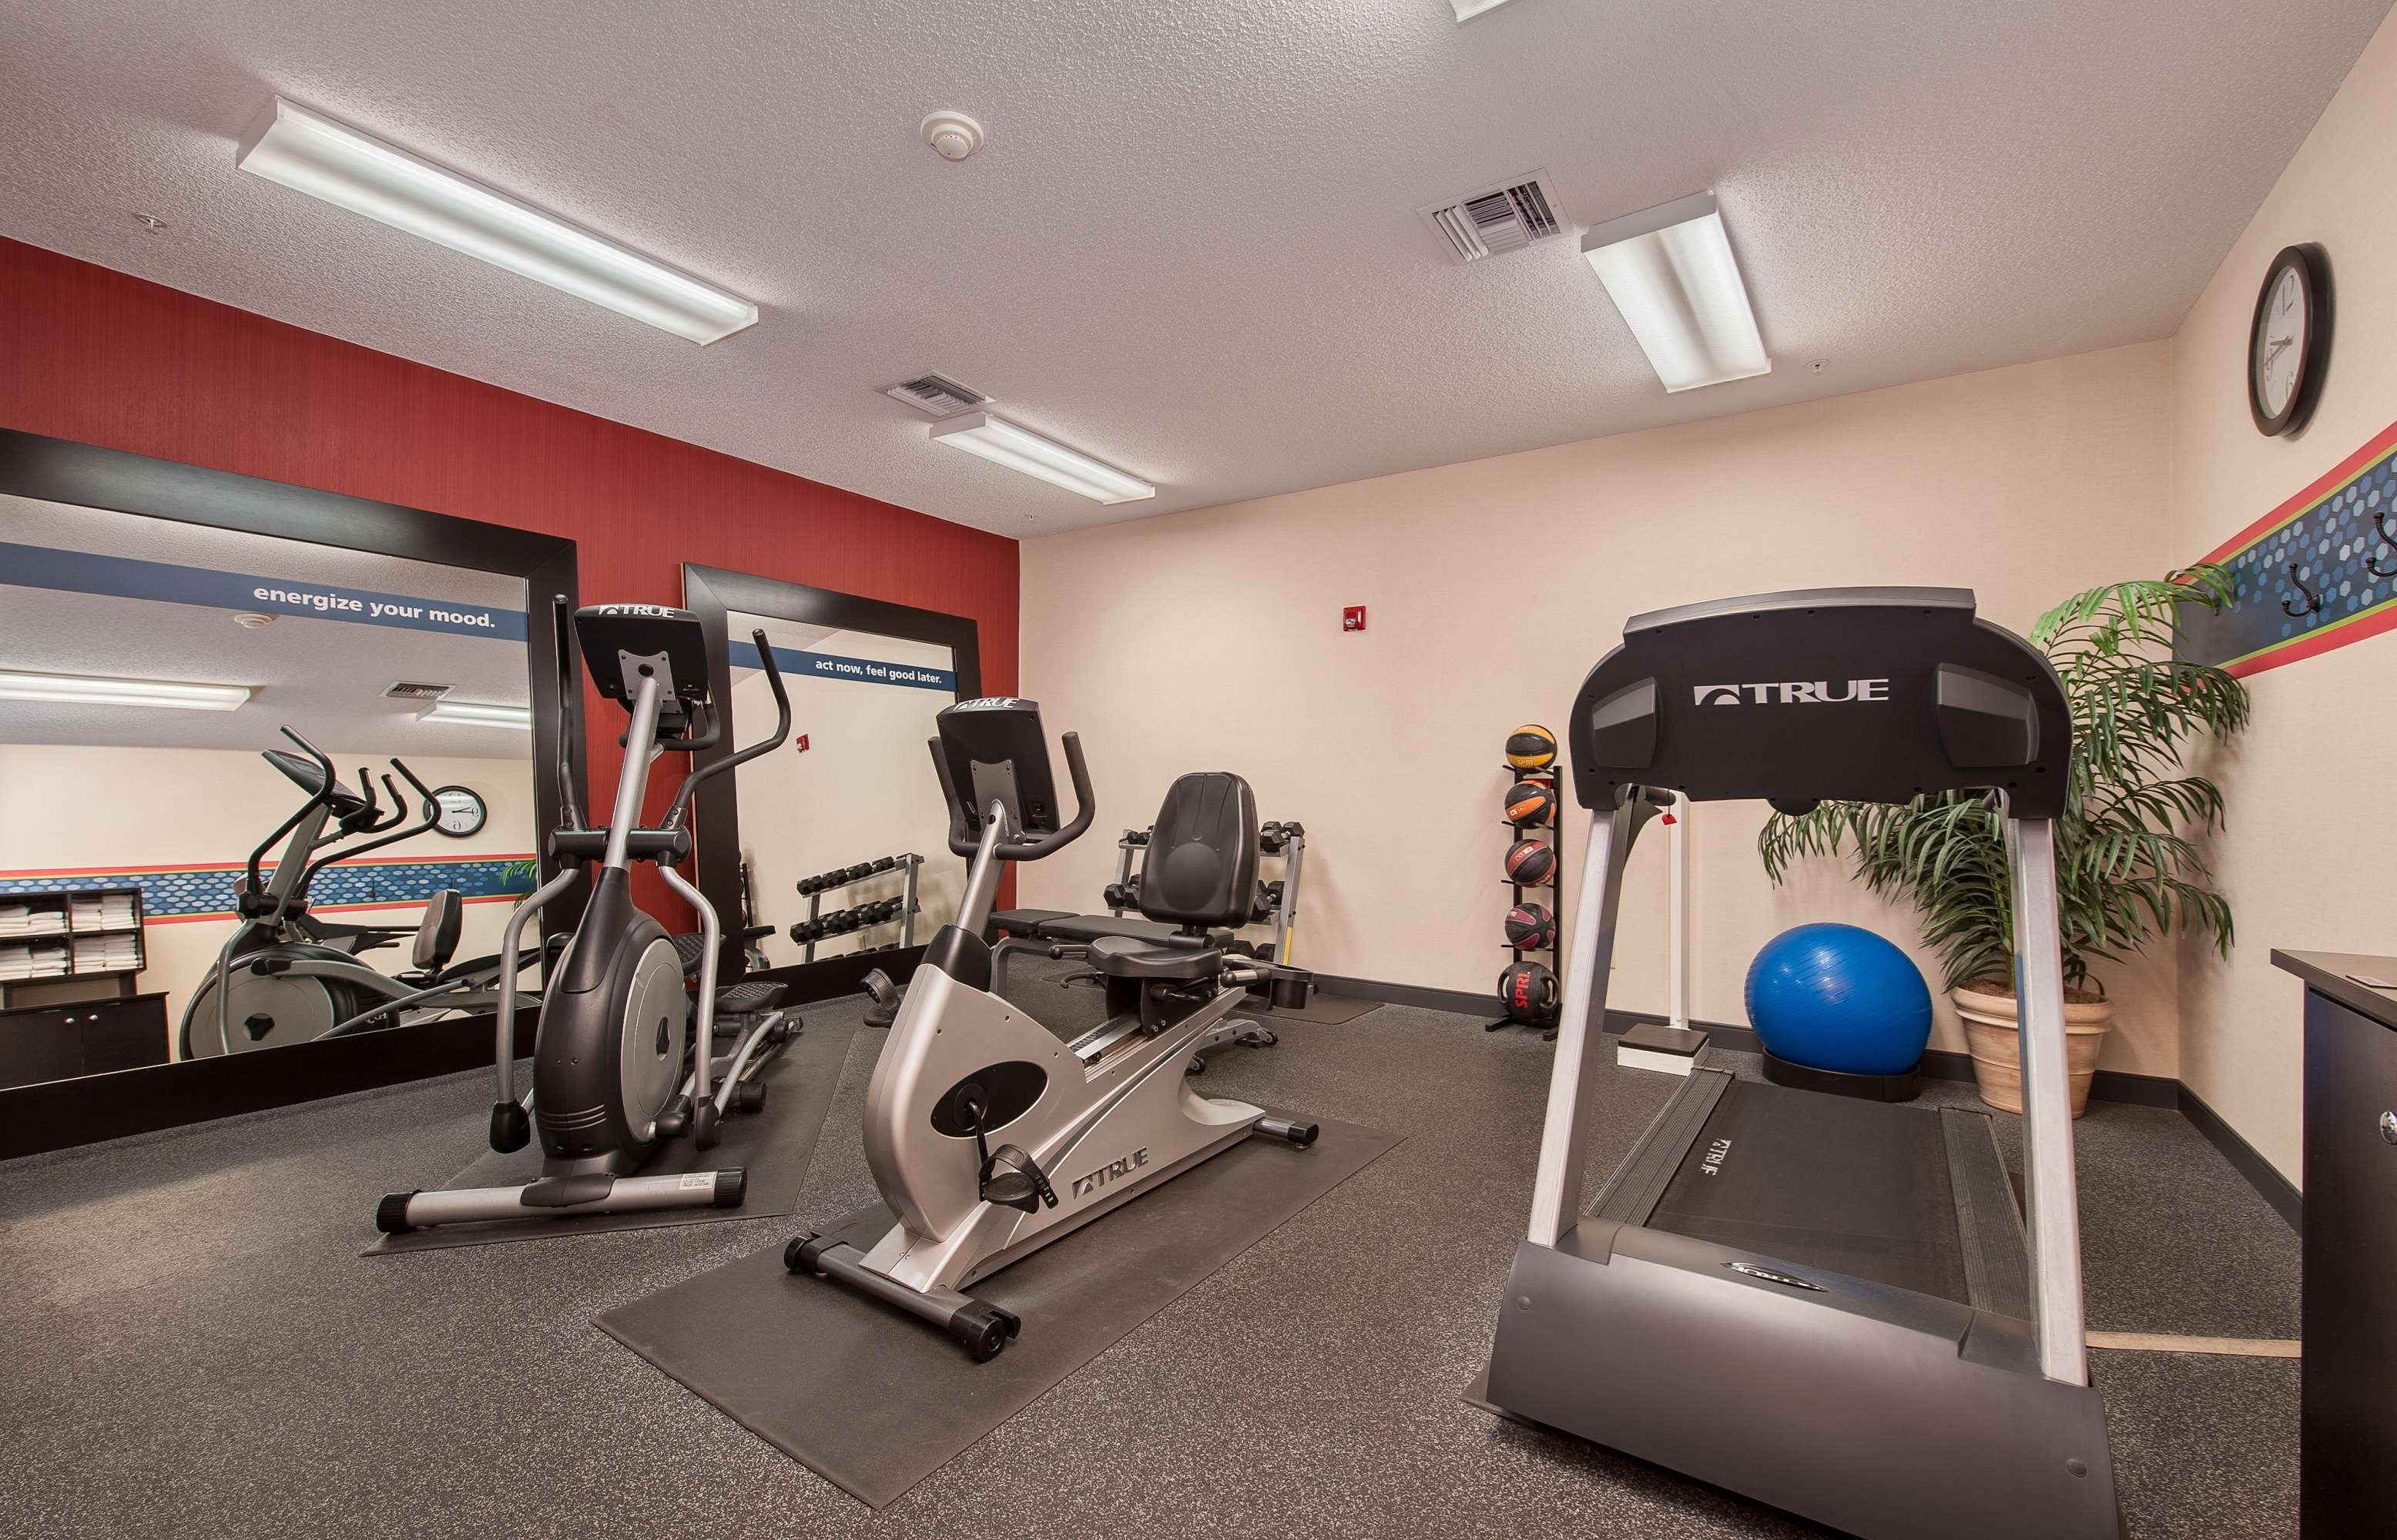 Hampton Inn Niceville-Eglin Air Force Base image 11